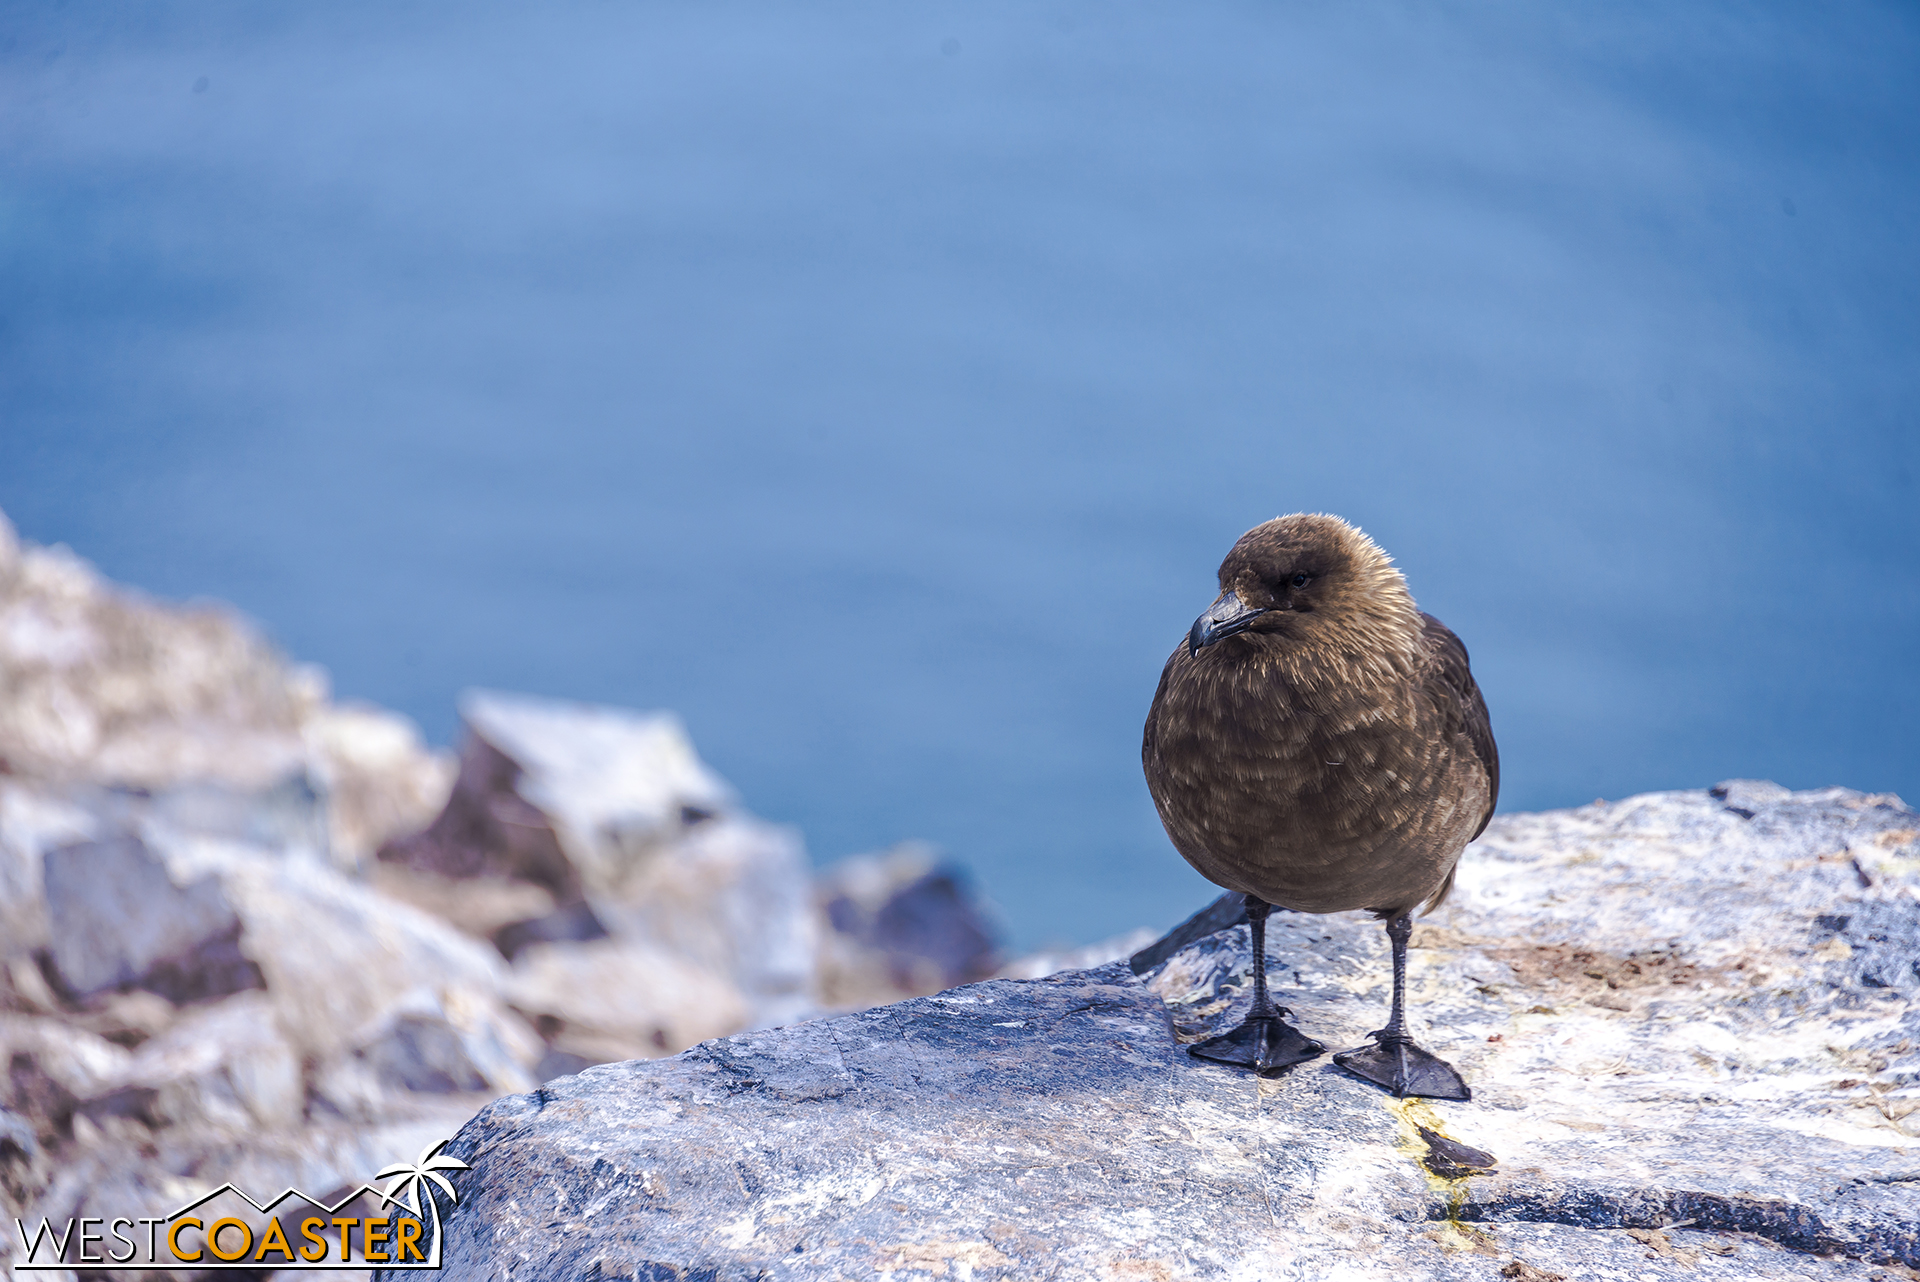 Penguins aren't the only birds around. This skua waits for a small chick to wander too far away from its parents.